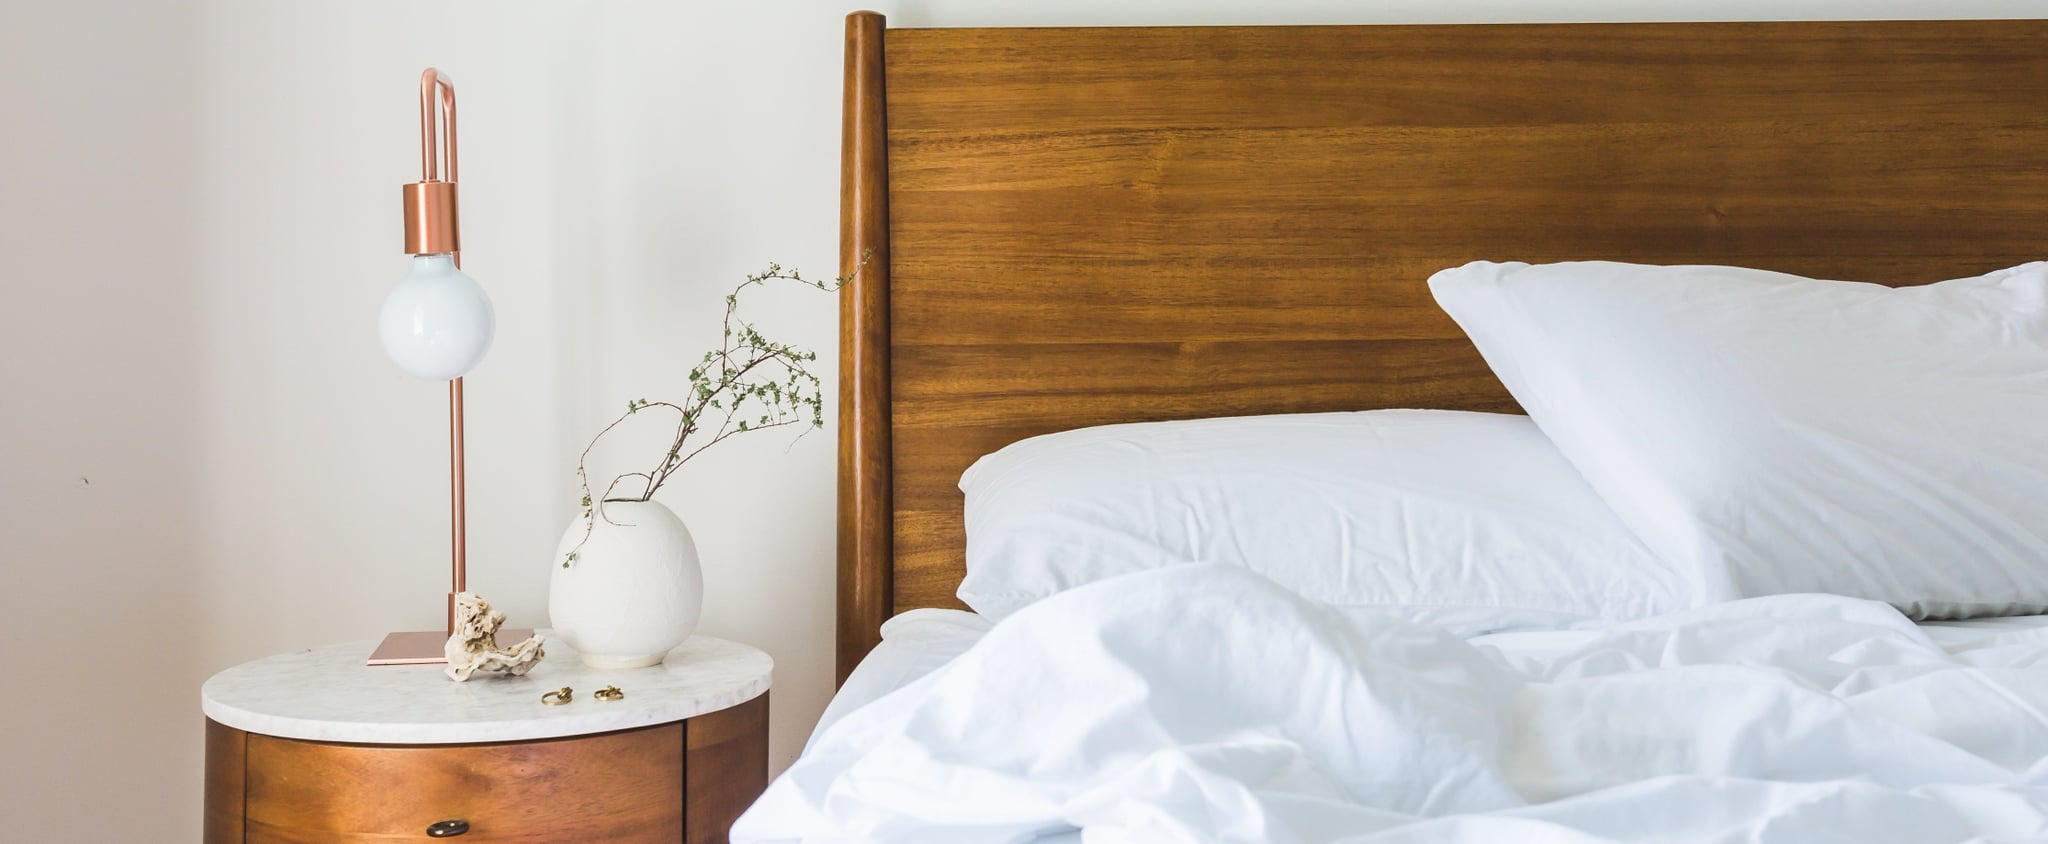 Why You Should Make Your Bed Every Day